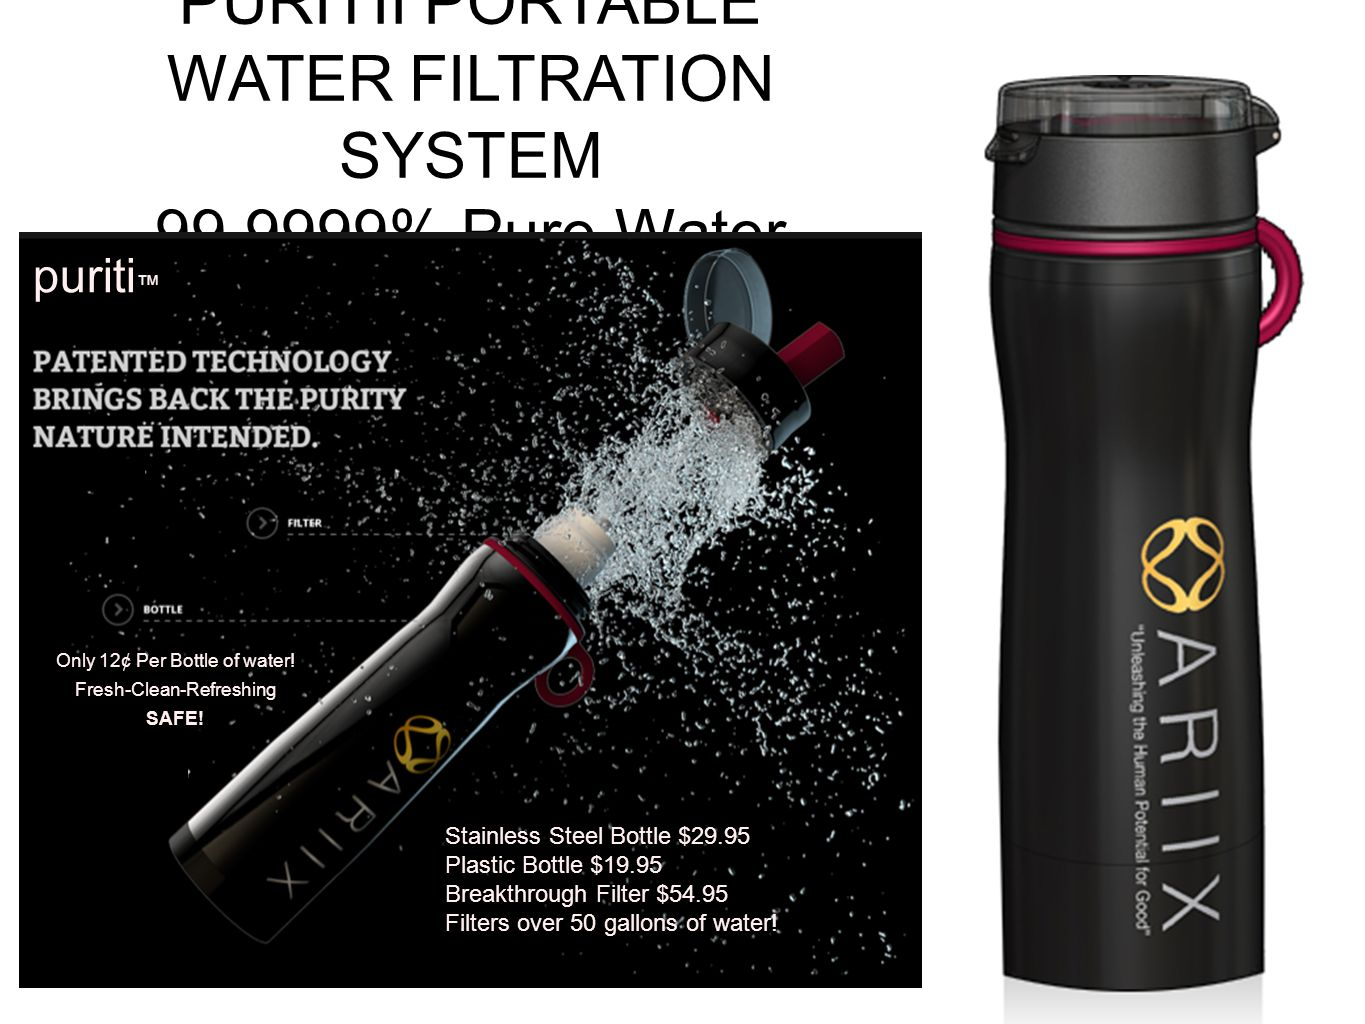 PURITII PORTABLE WATER FILTRATION SYSTEM 99.9999% Pure Water puriti Stainless Steel Bottle $29.95 Plastic Bottle $19.95 Breakthrough Filter $54.95 Fil